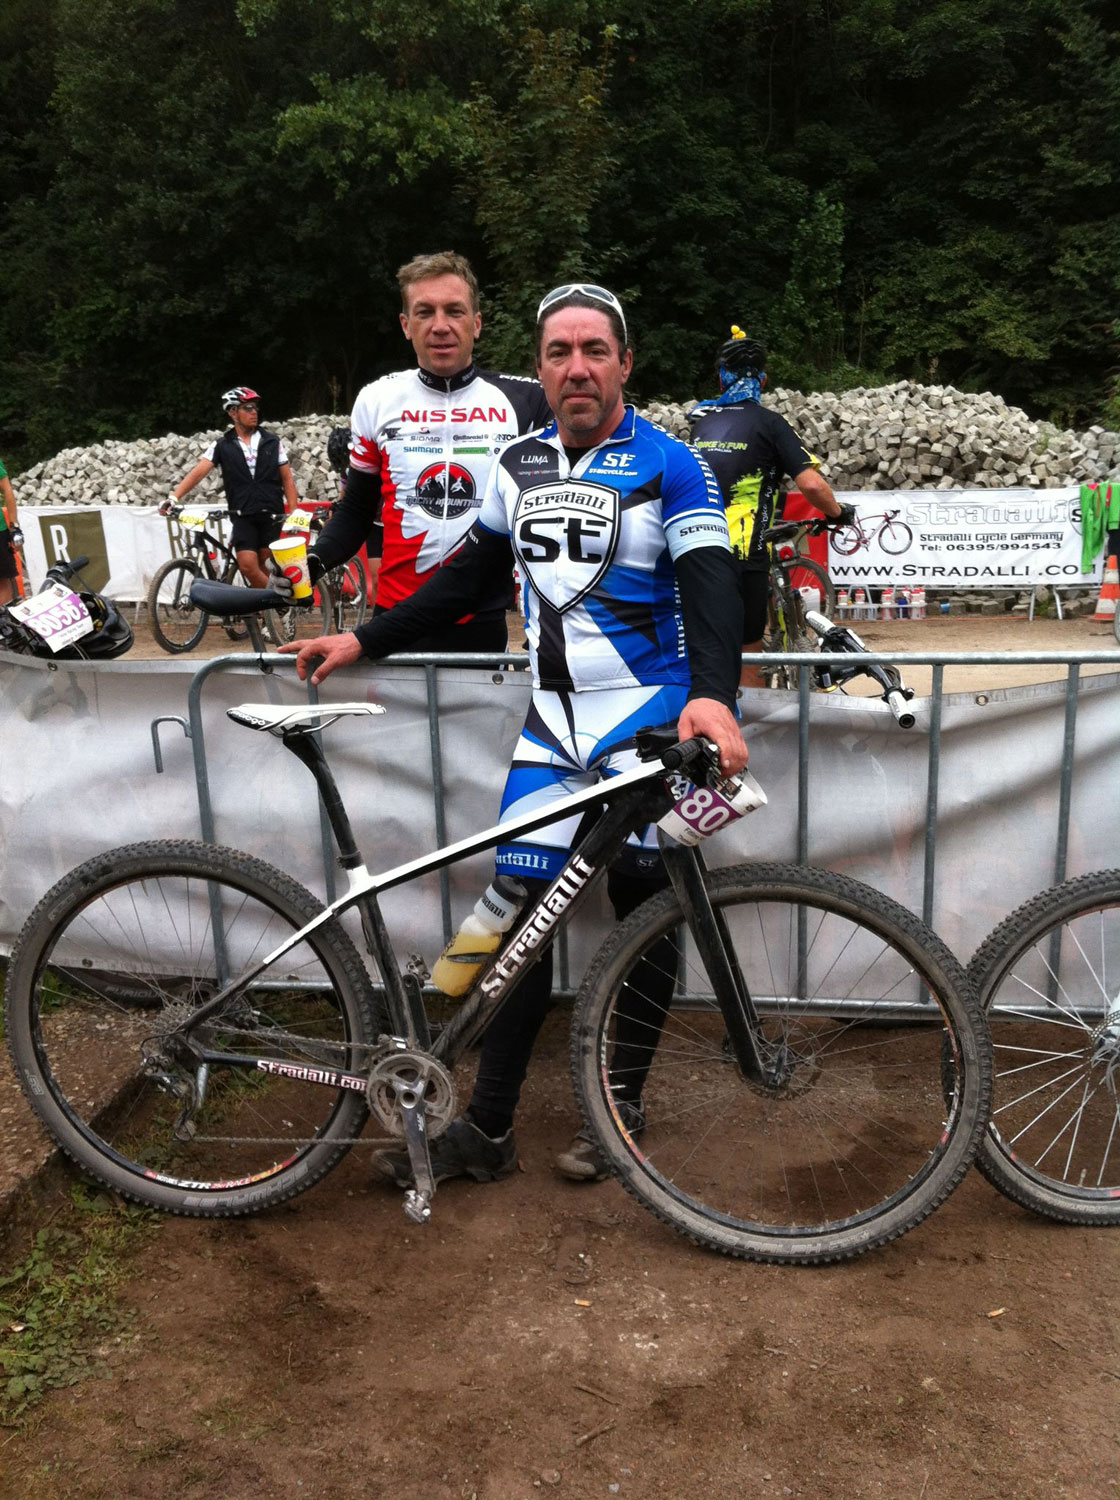 stradalli_team_29er_tom_steinbacher_duisburg_24h_mtb_races